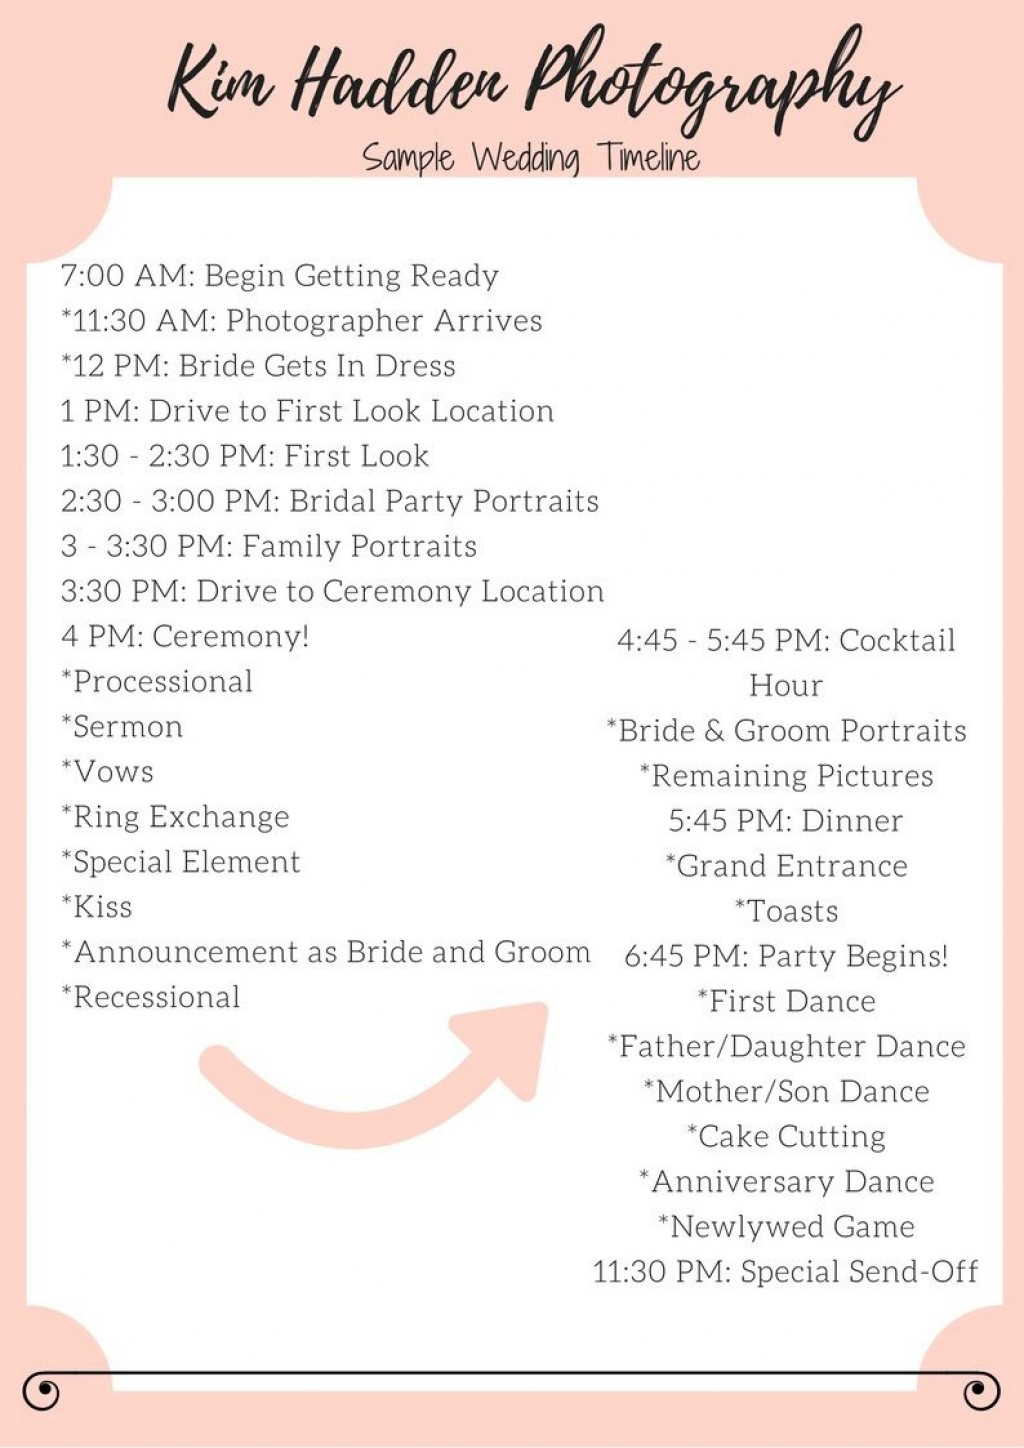 004 Outstanding Wedding Timeline Template Free Download Highest Clarity Large